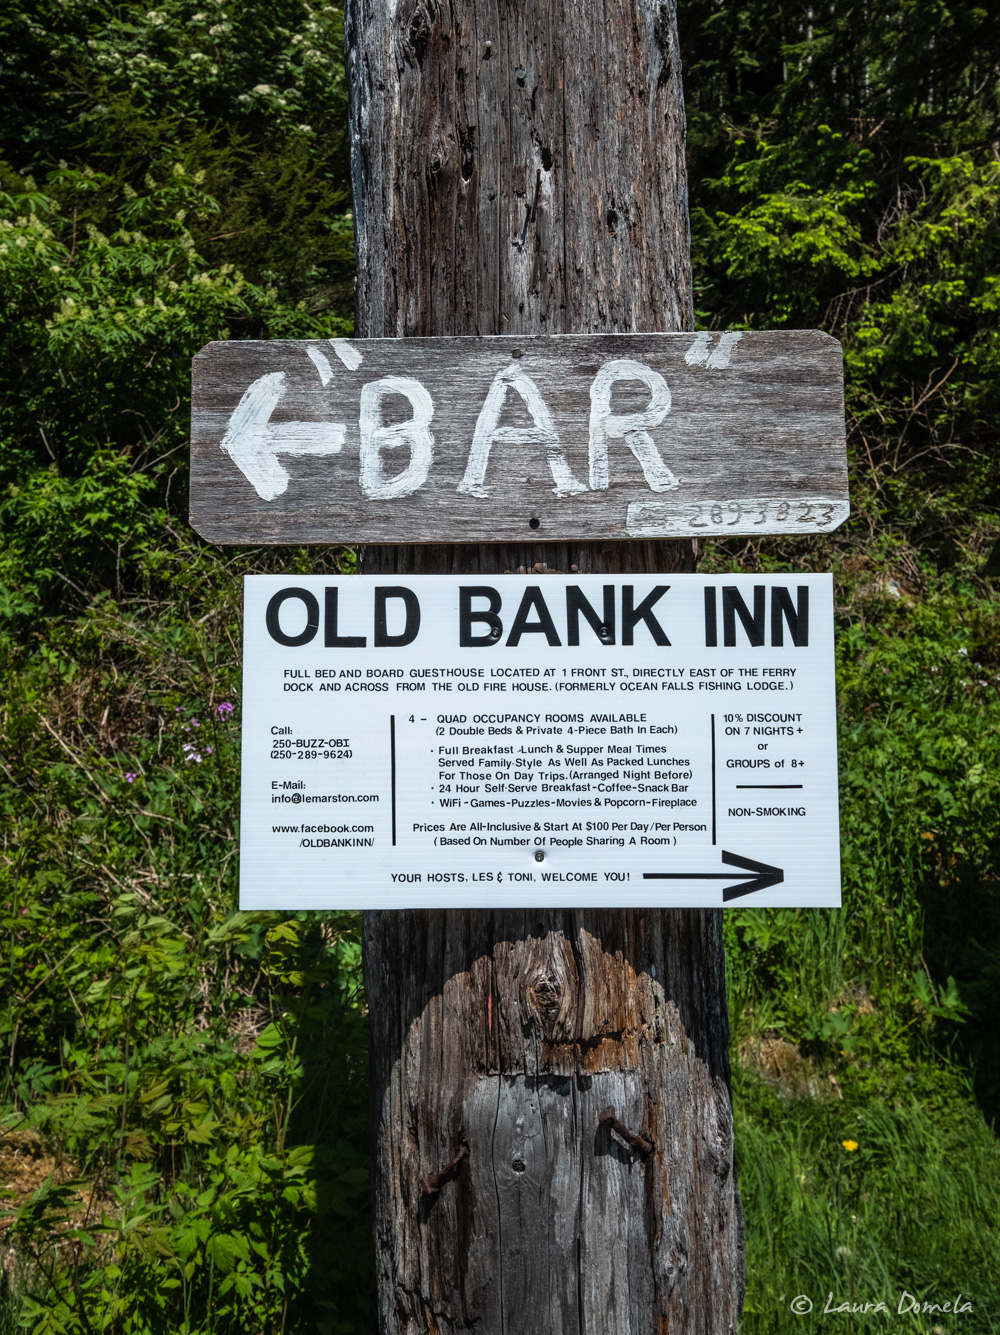 The Old Bank Inn used to be a privately owned fishing lodge. Now it's an inn with 6 rooms and 5 bathrooms.